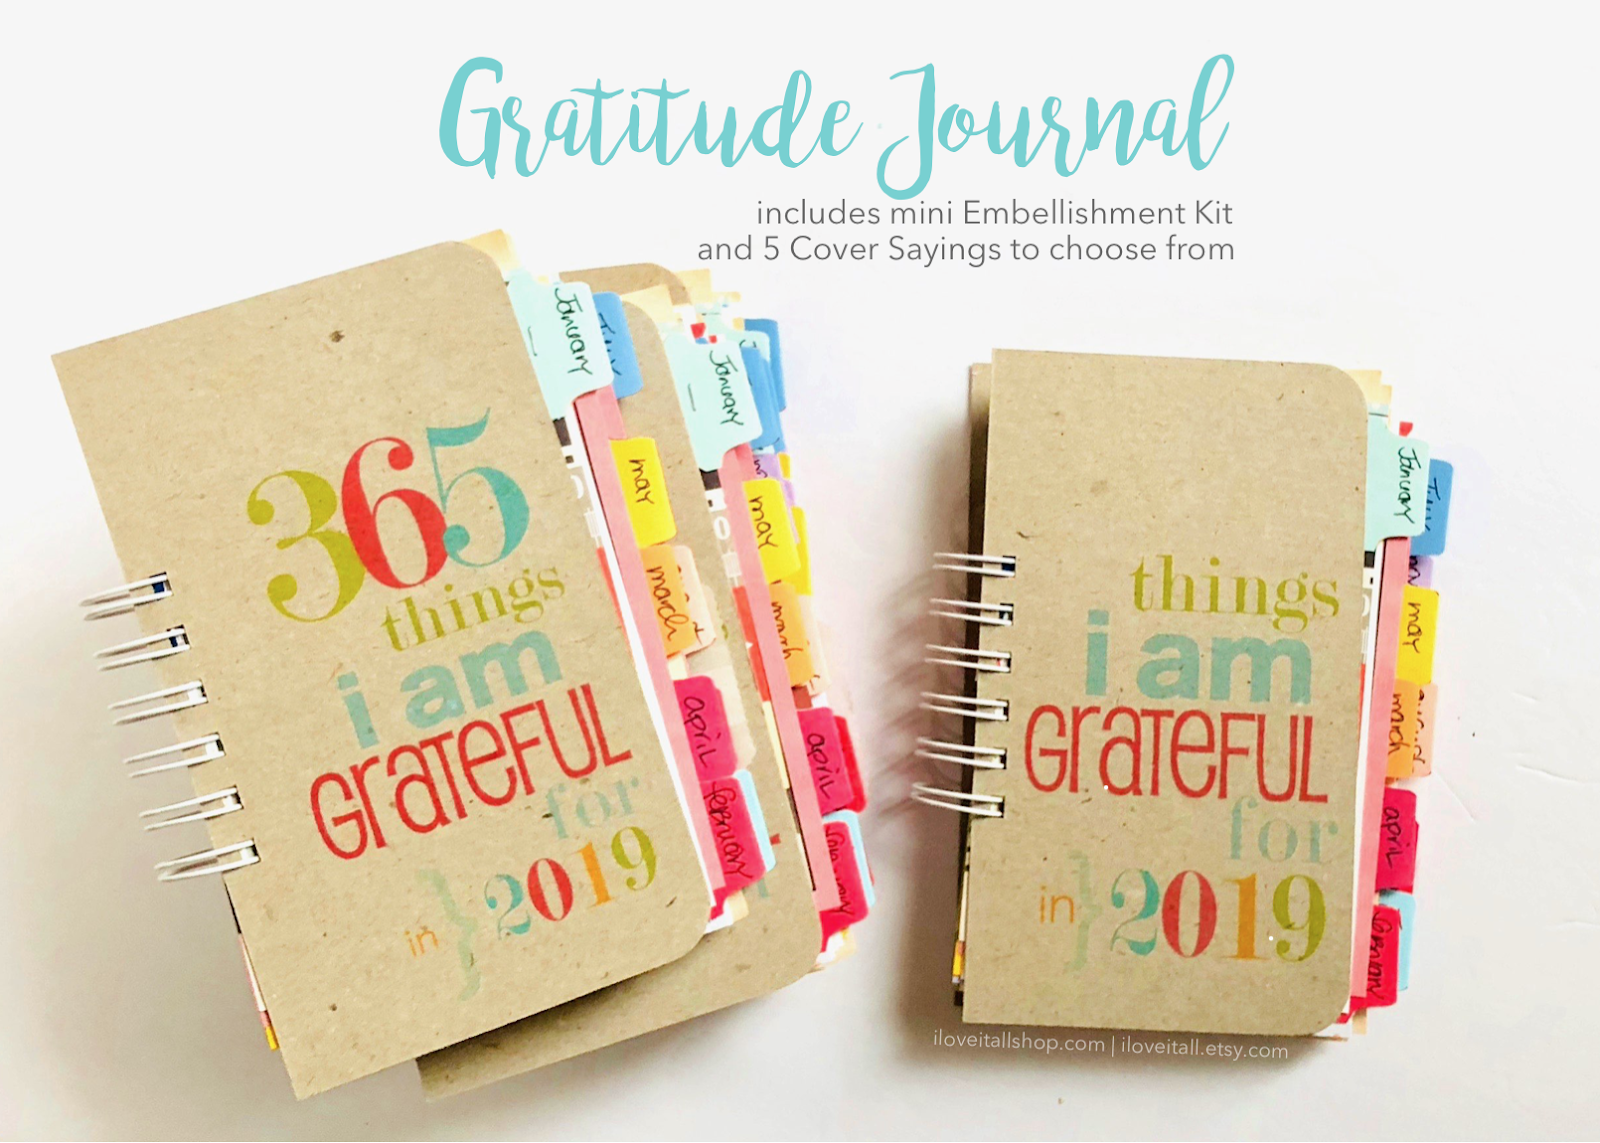 #gratitude #gratitude journal #journaling #Things I Am Thankful For #Today I Am Grateful For #thankful #thankfulness #I Am Thankful For